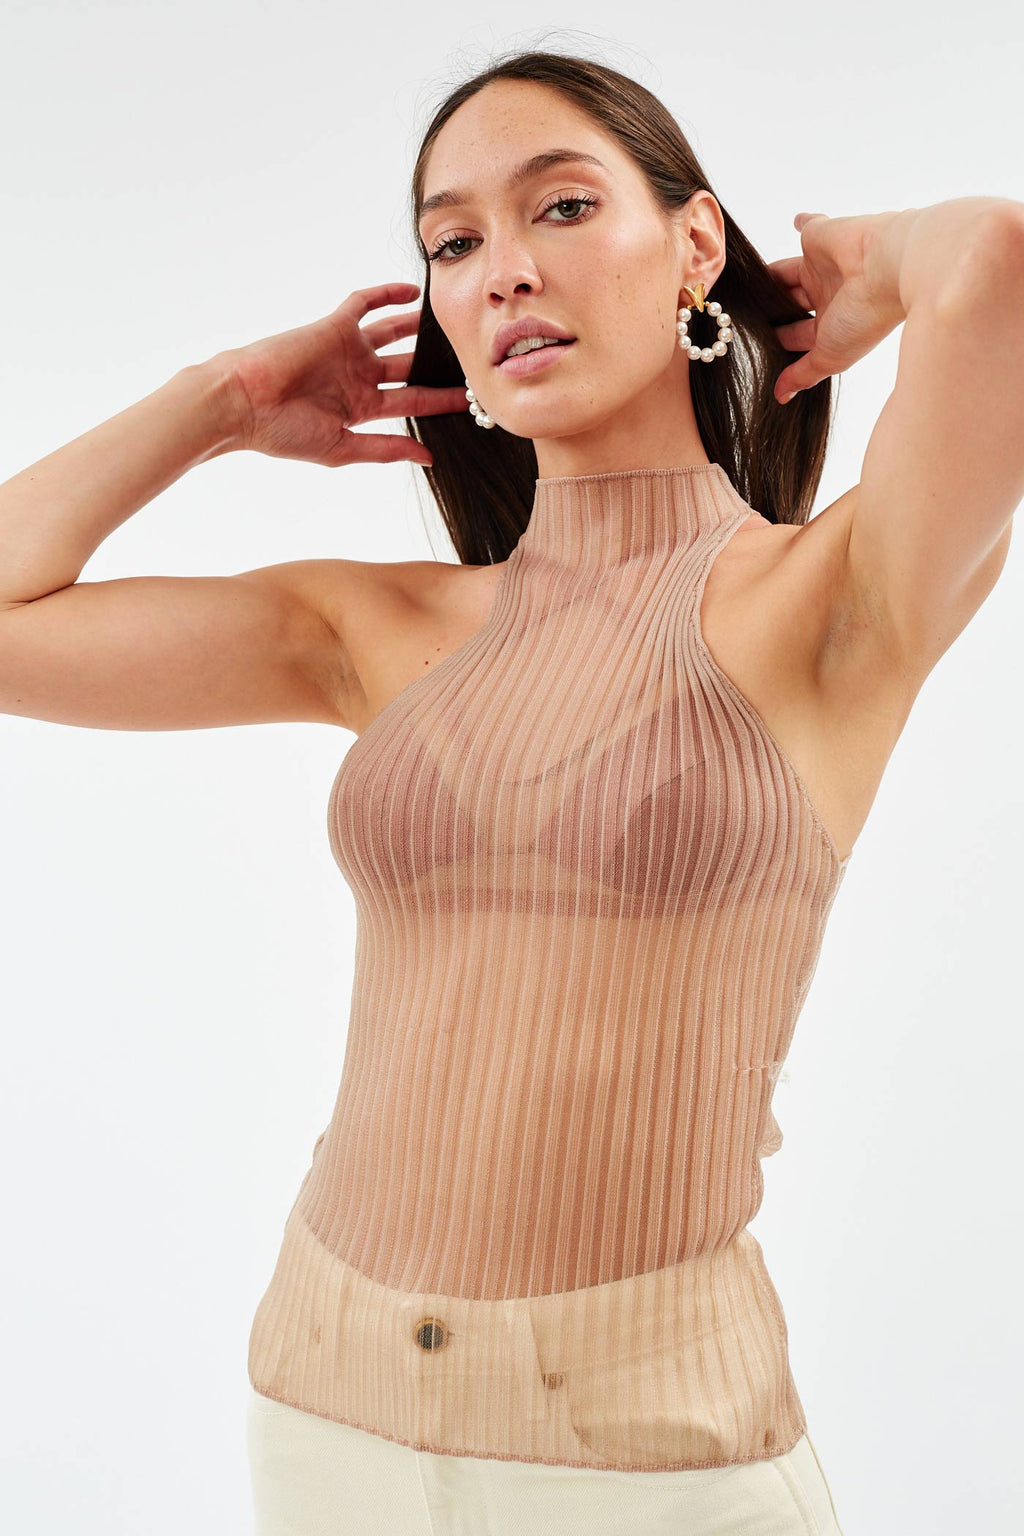 Corrugated Sheer Nude Tank